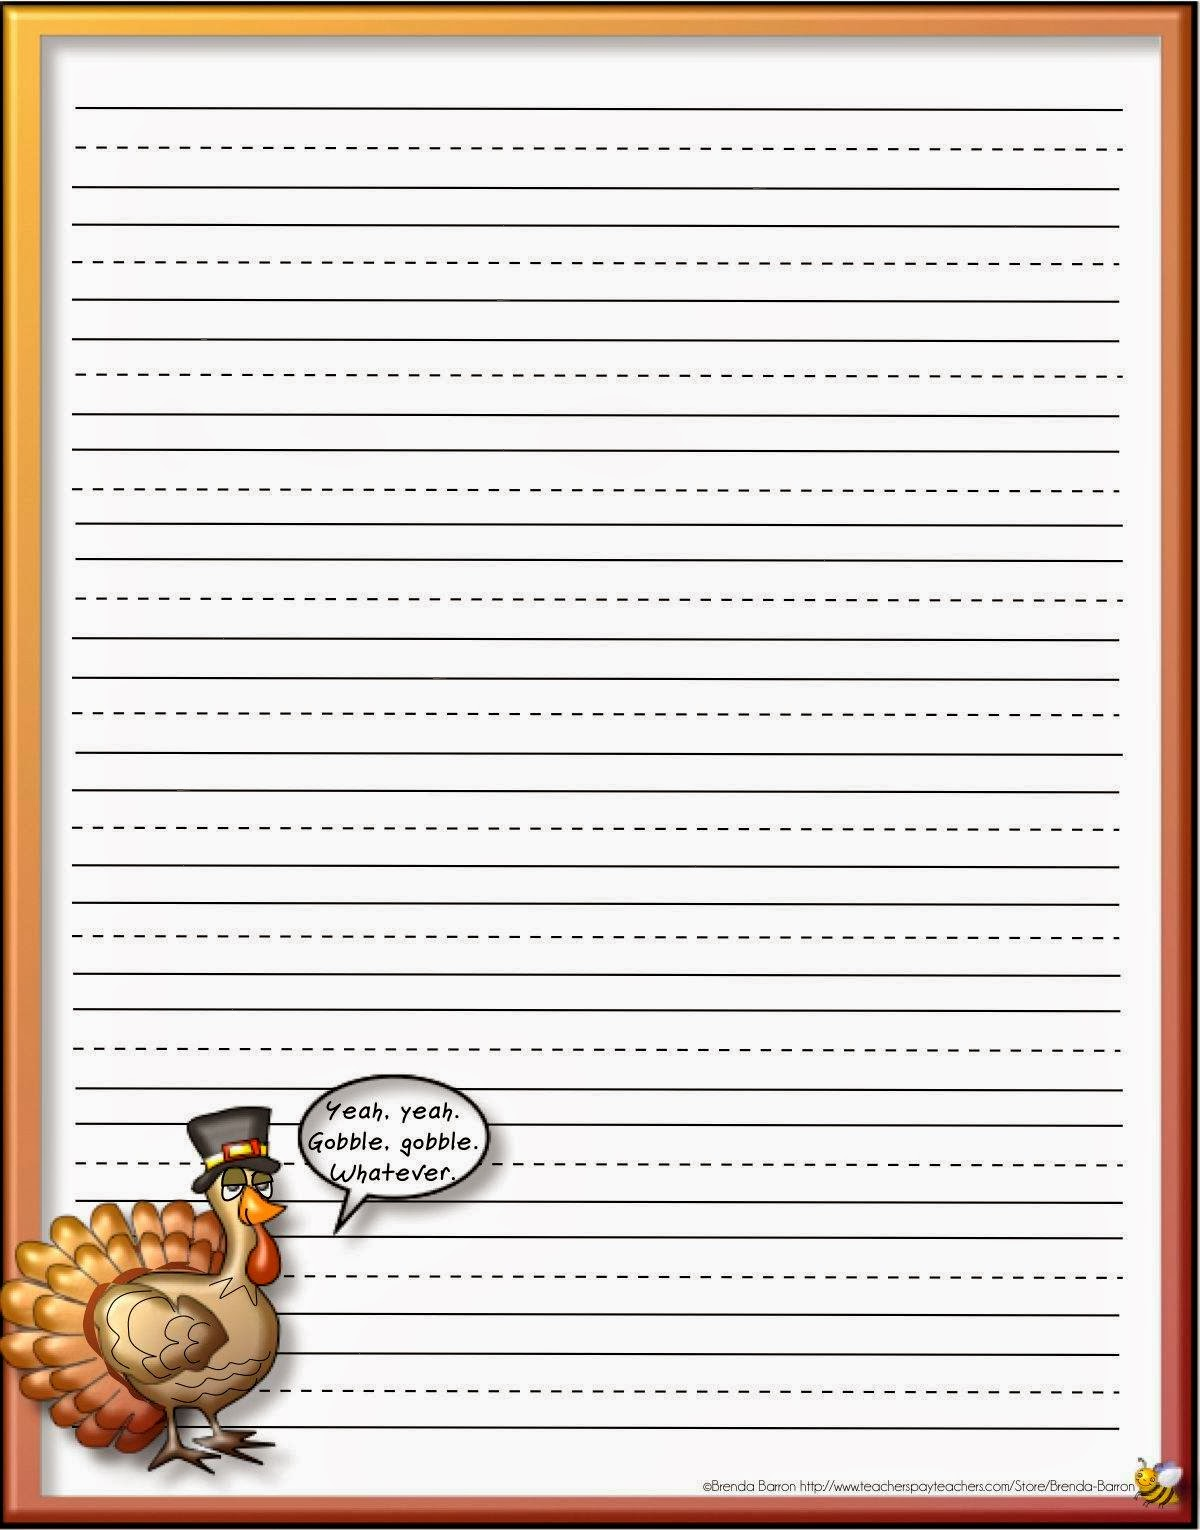 The Classroom Flyer Teaching Blog: Free Thanksgiving Stationery ...